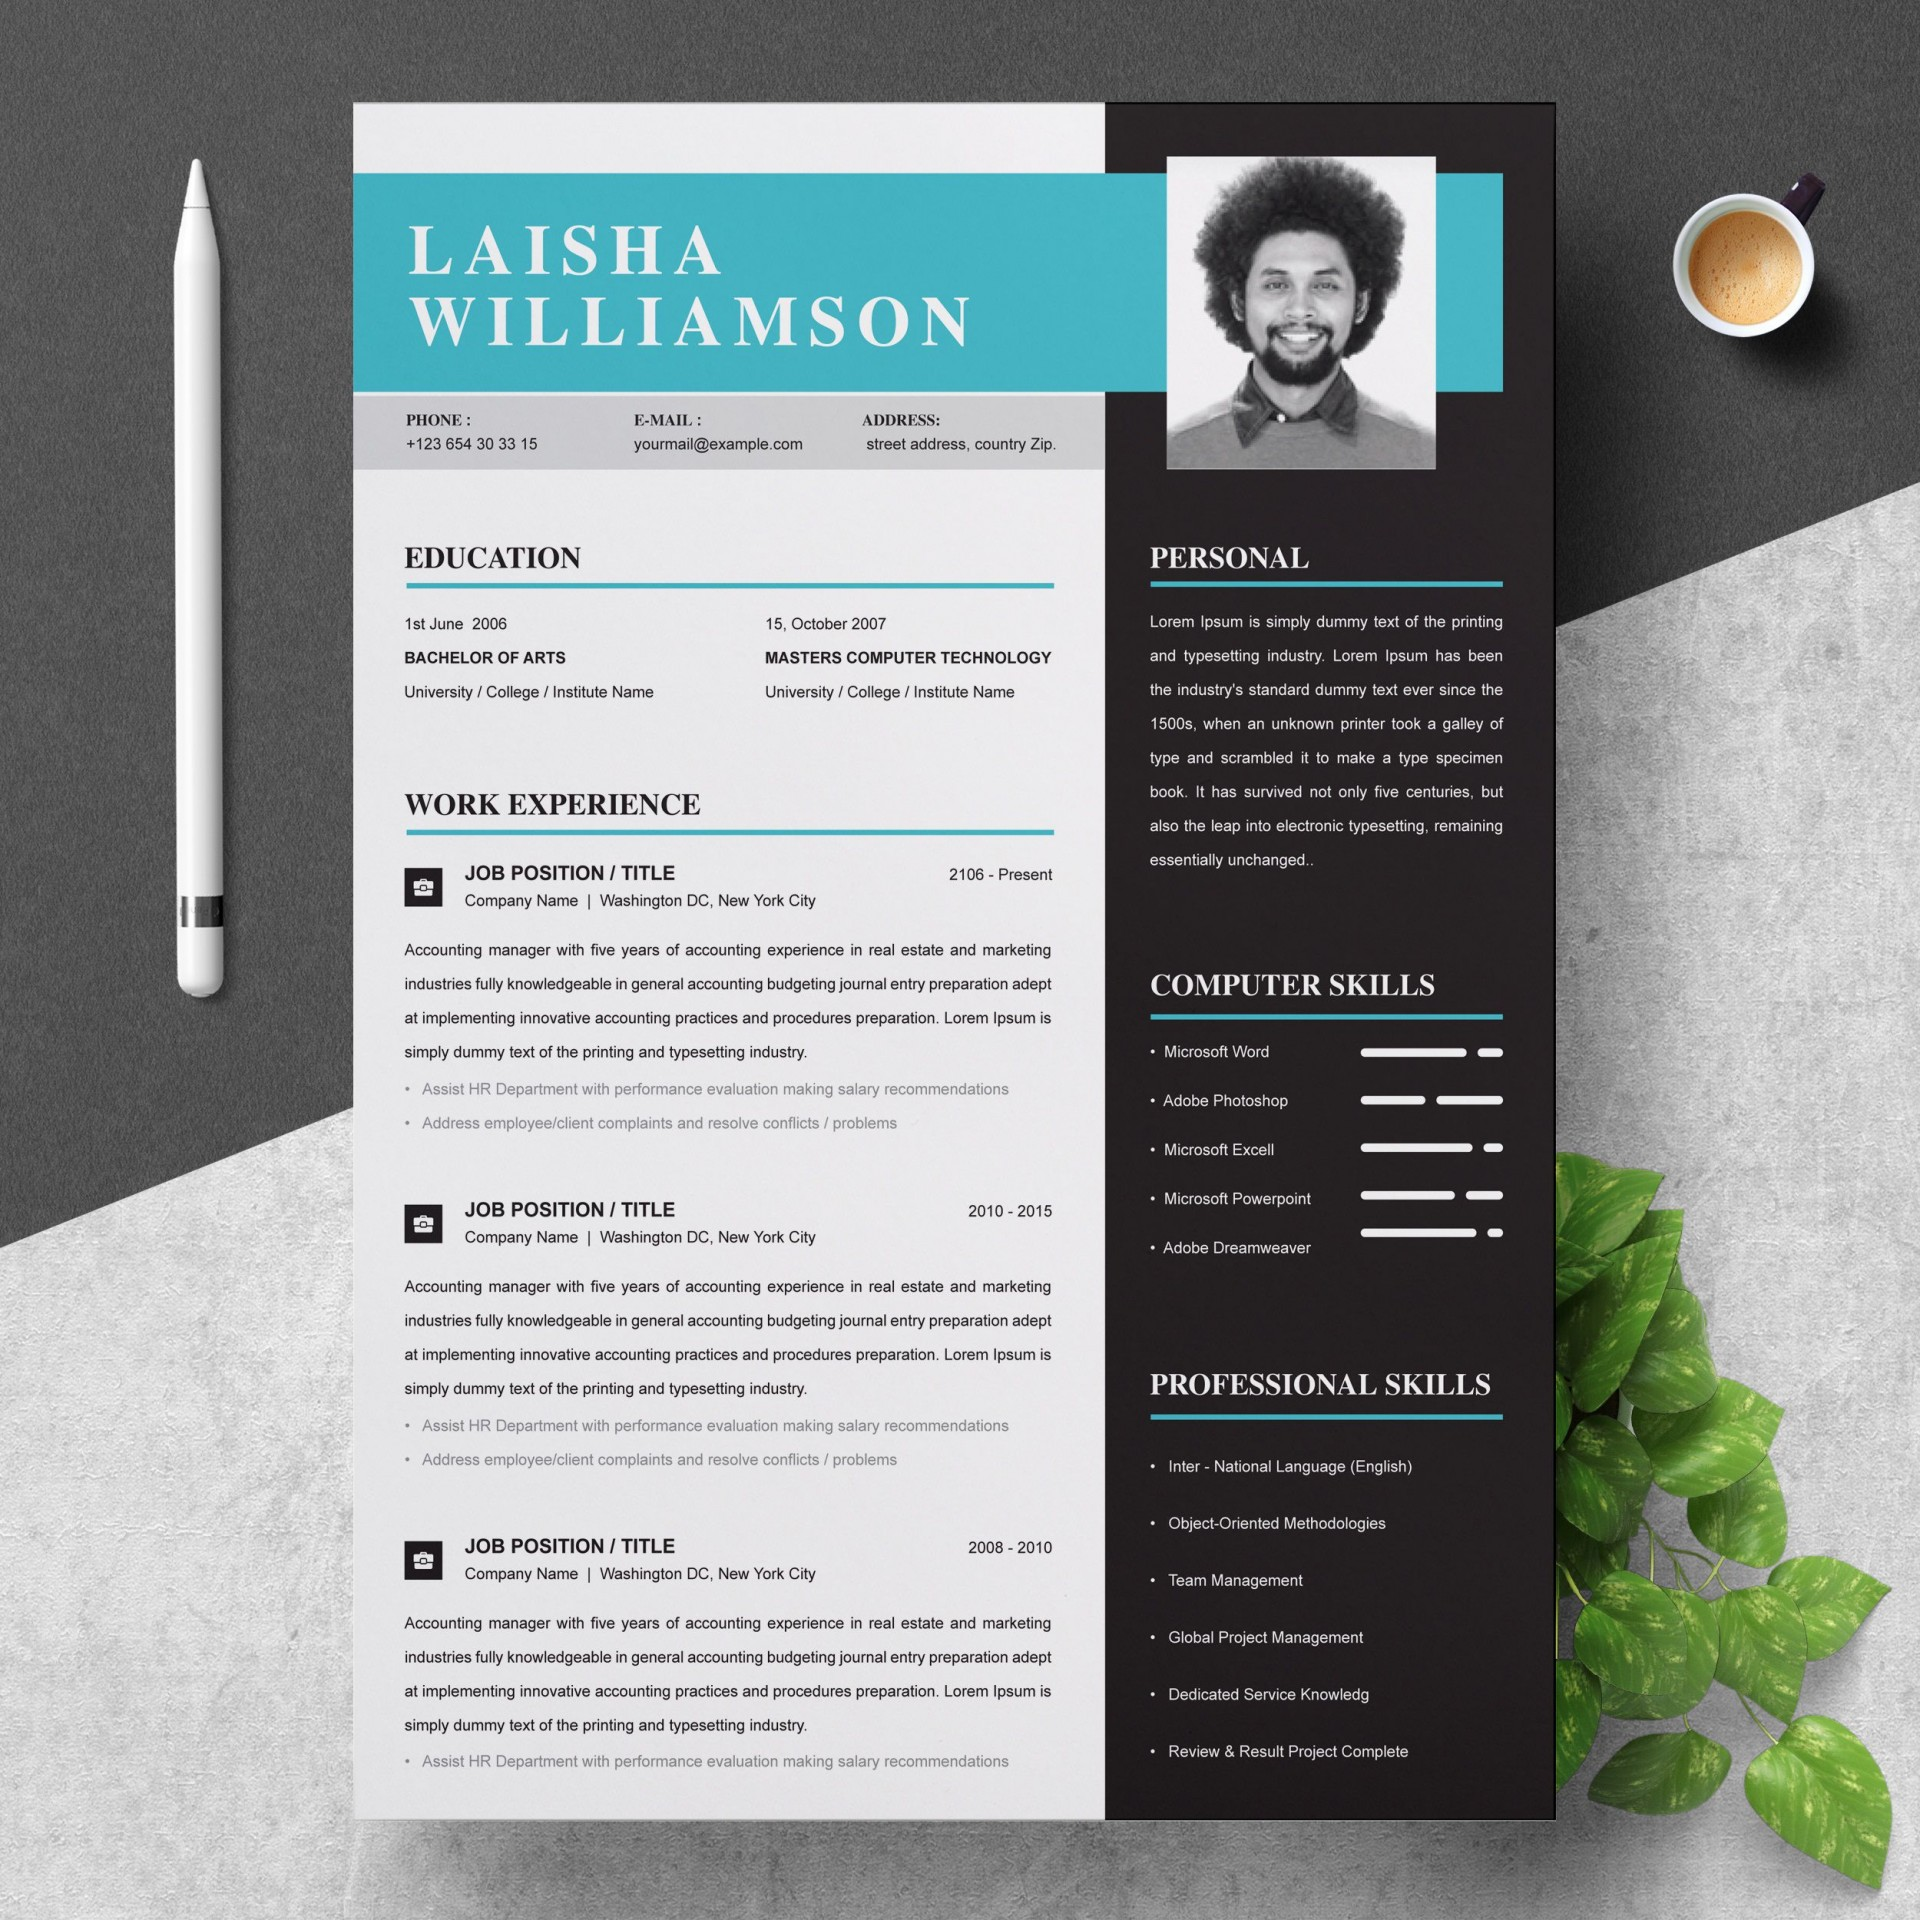 001 Astounding Free Resume Template 2015 Highest Quality 1920